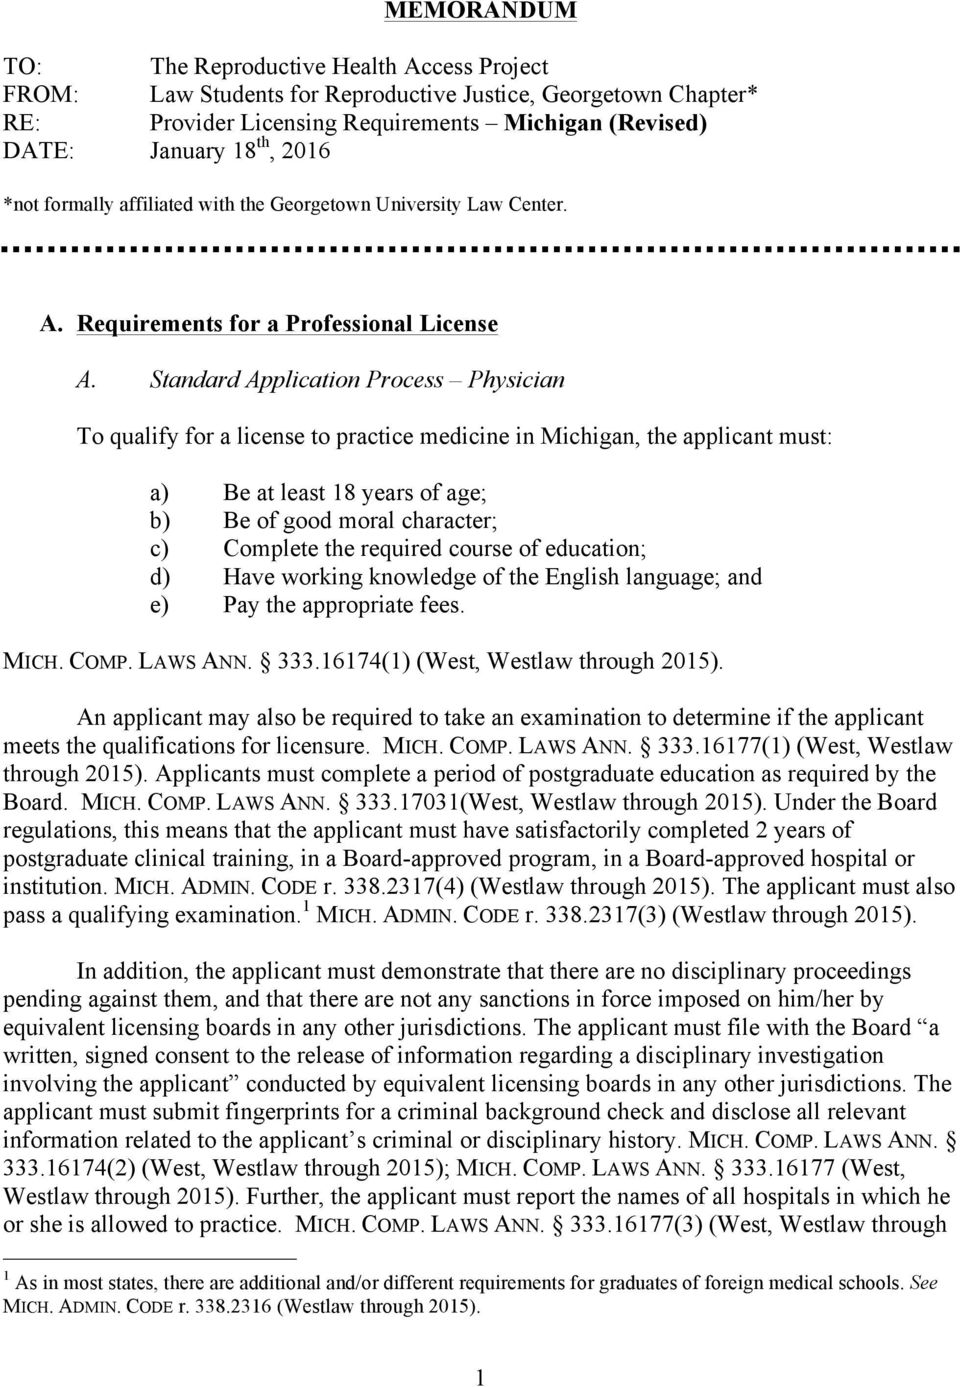 Standard Application Process Physician To qualify for a license to practice medicine in Michigan, the applicant must: a) Be at least 18 years of age; b) Be of good moral character; c) Complete the